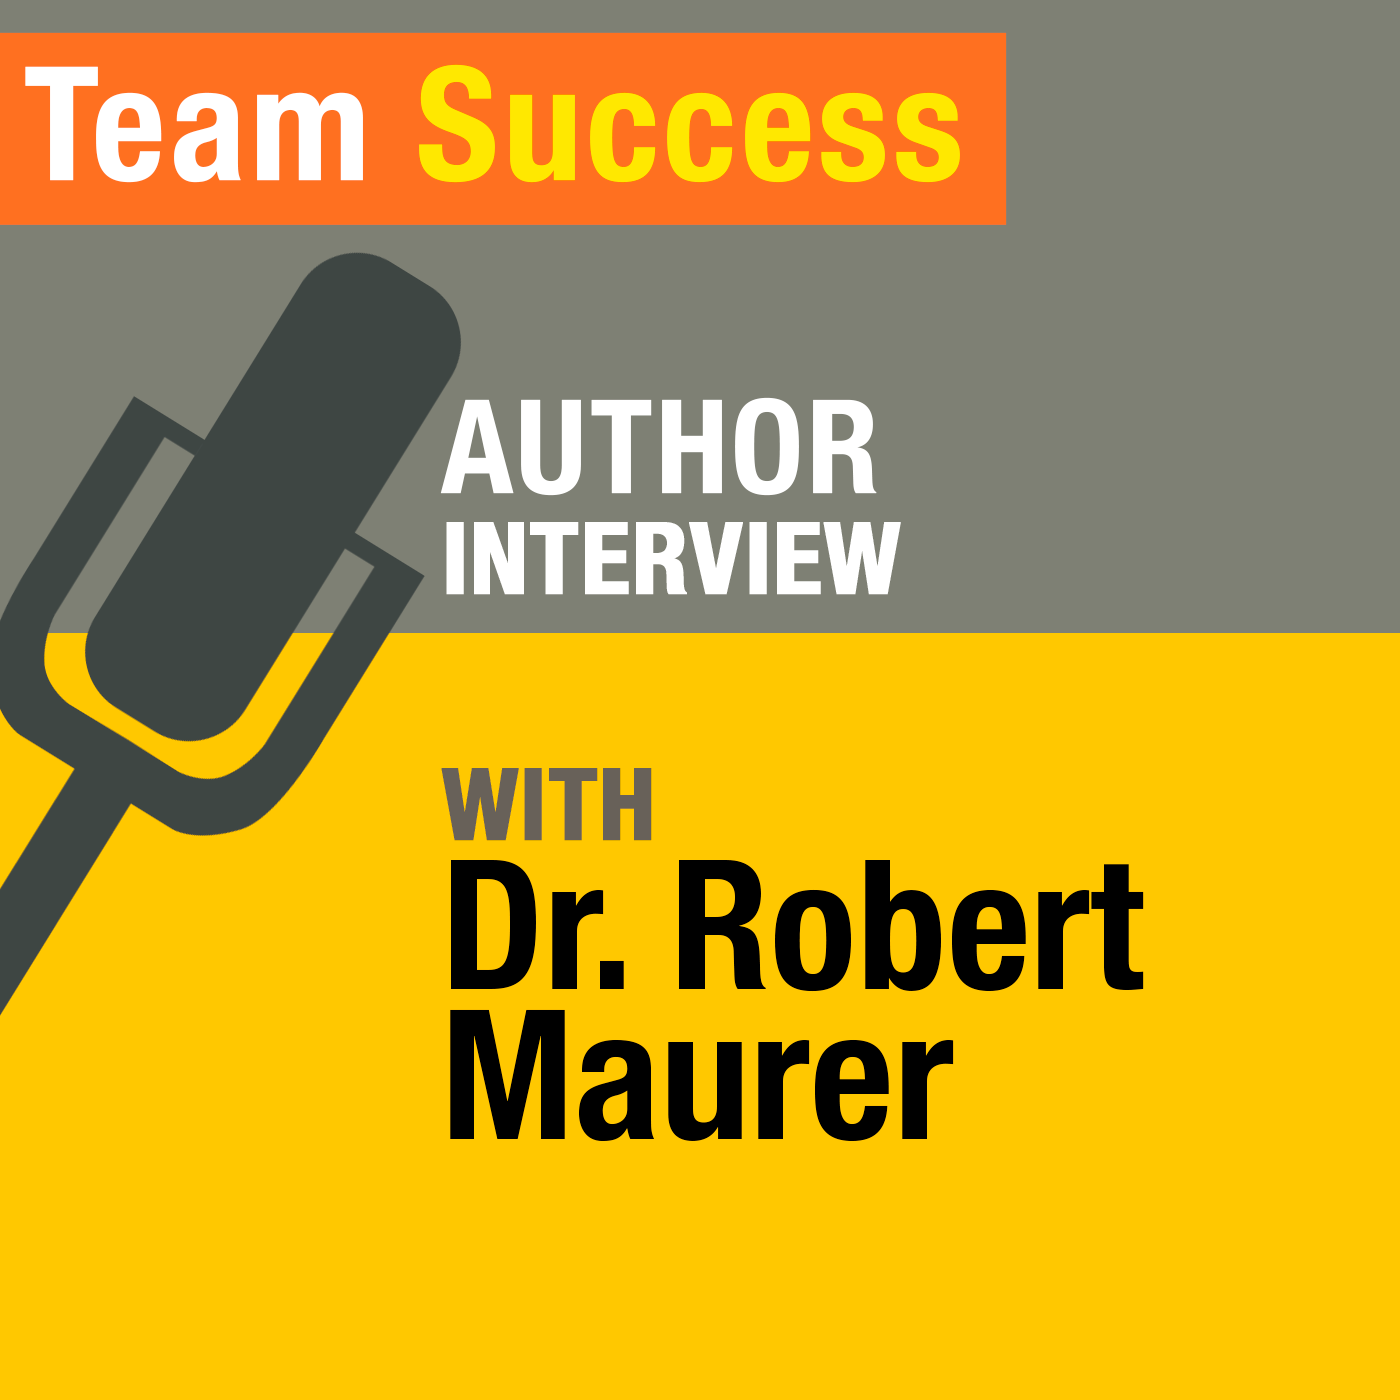 An Interview With Dr. Robert Maurer